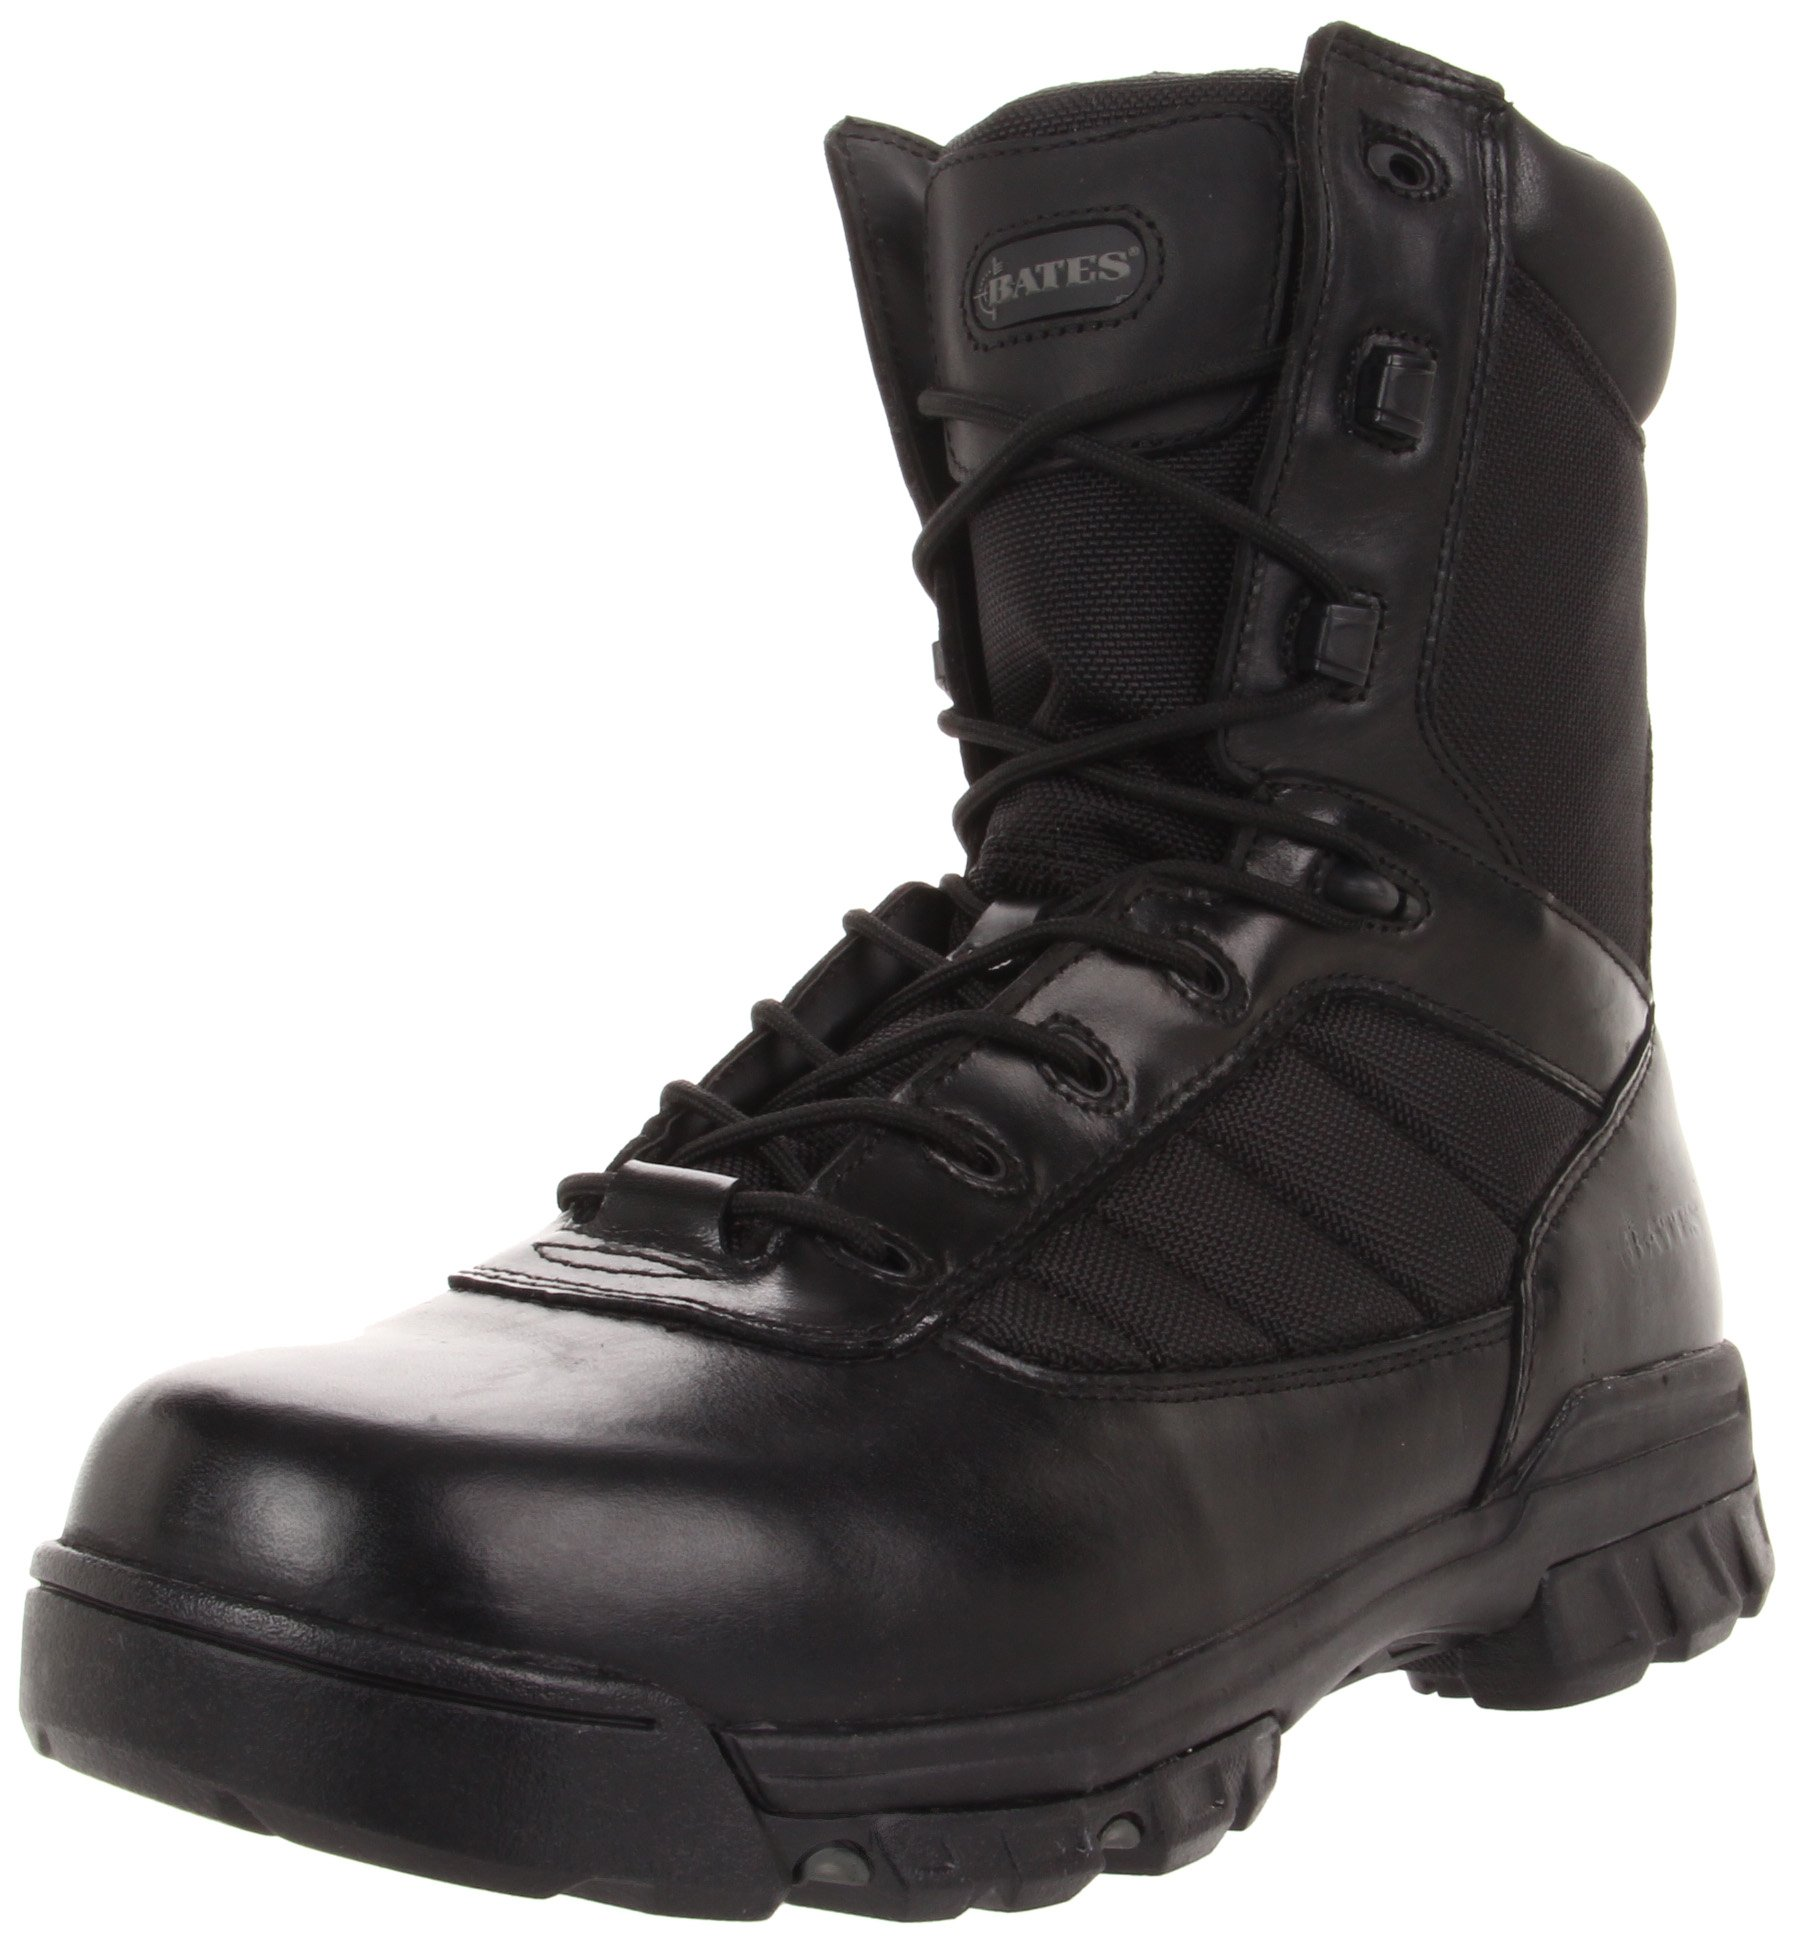 Bates Men's Ultra-Lites 8 Inches Tactical Sport Side Zip Work Boot,Black,11.5 M US